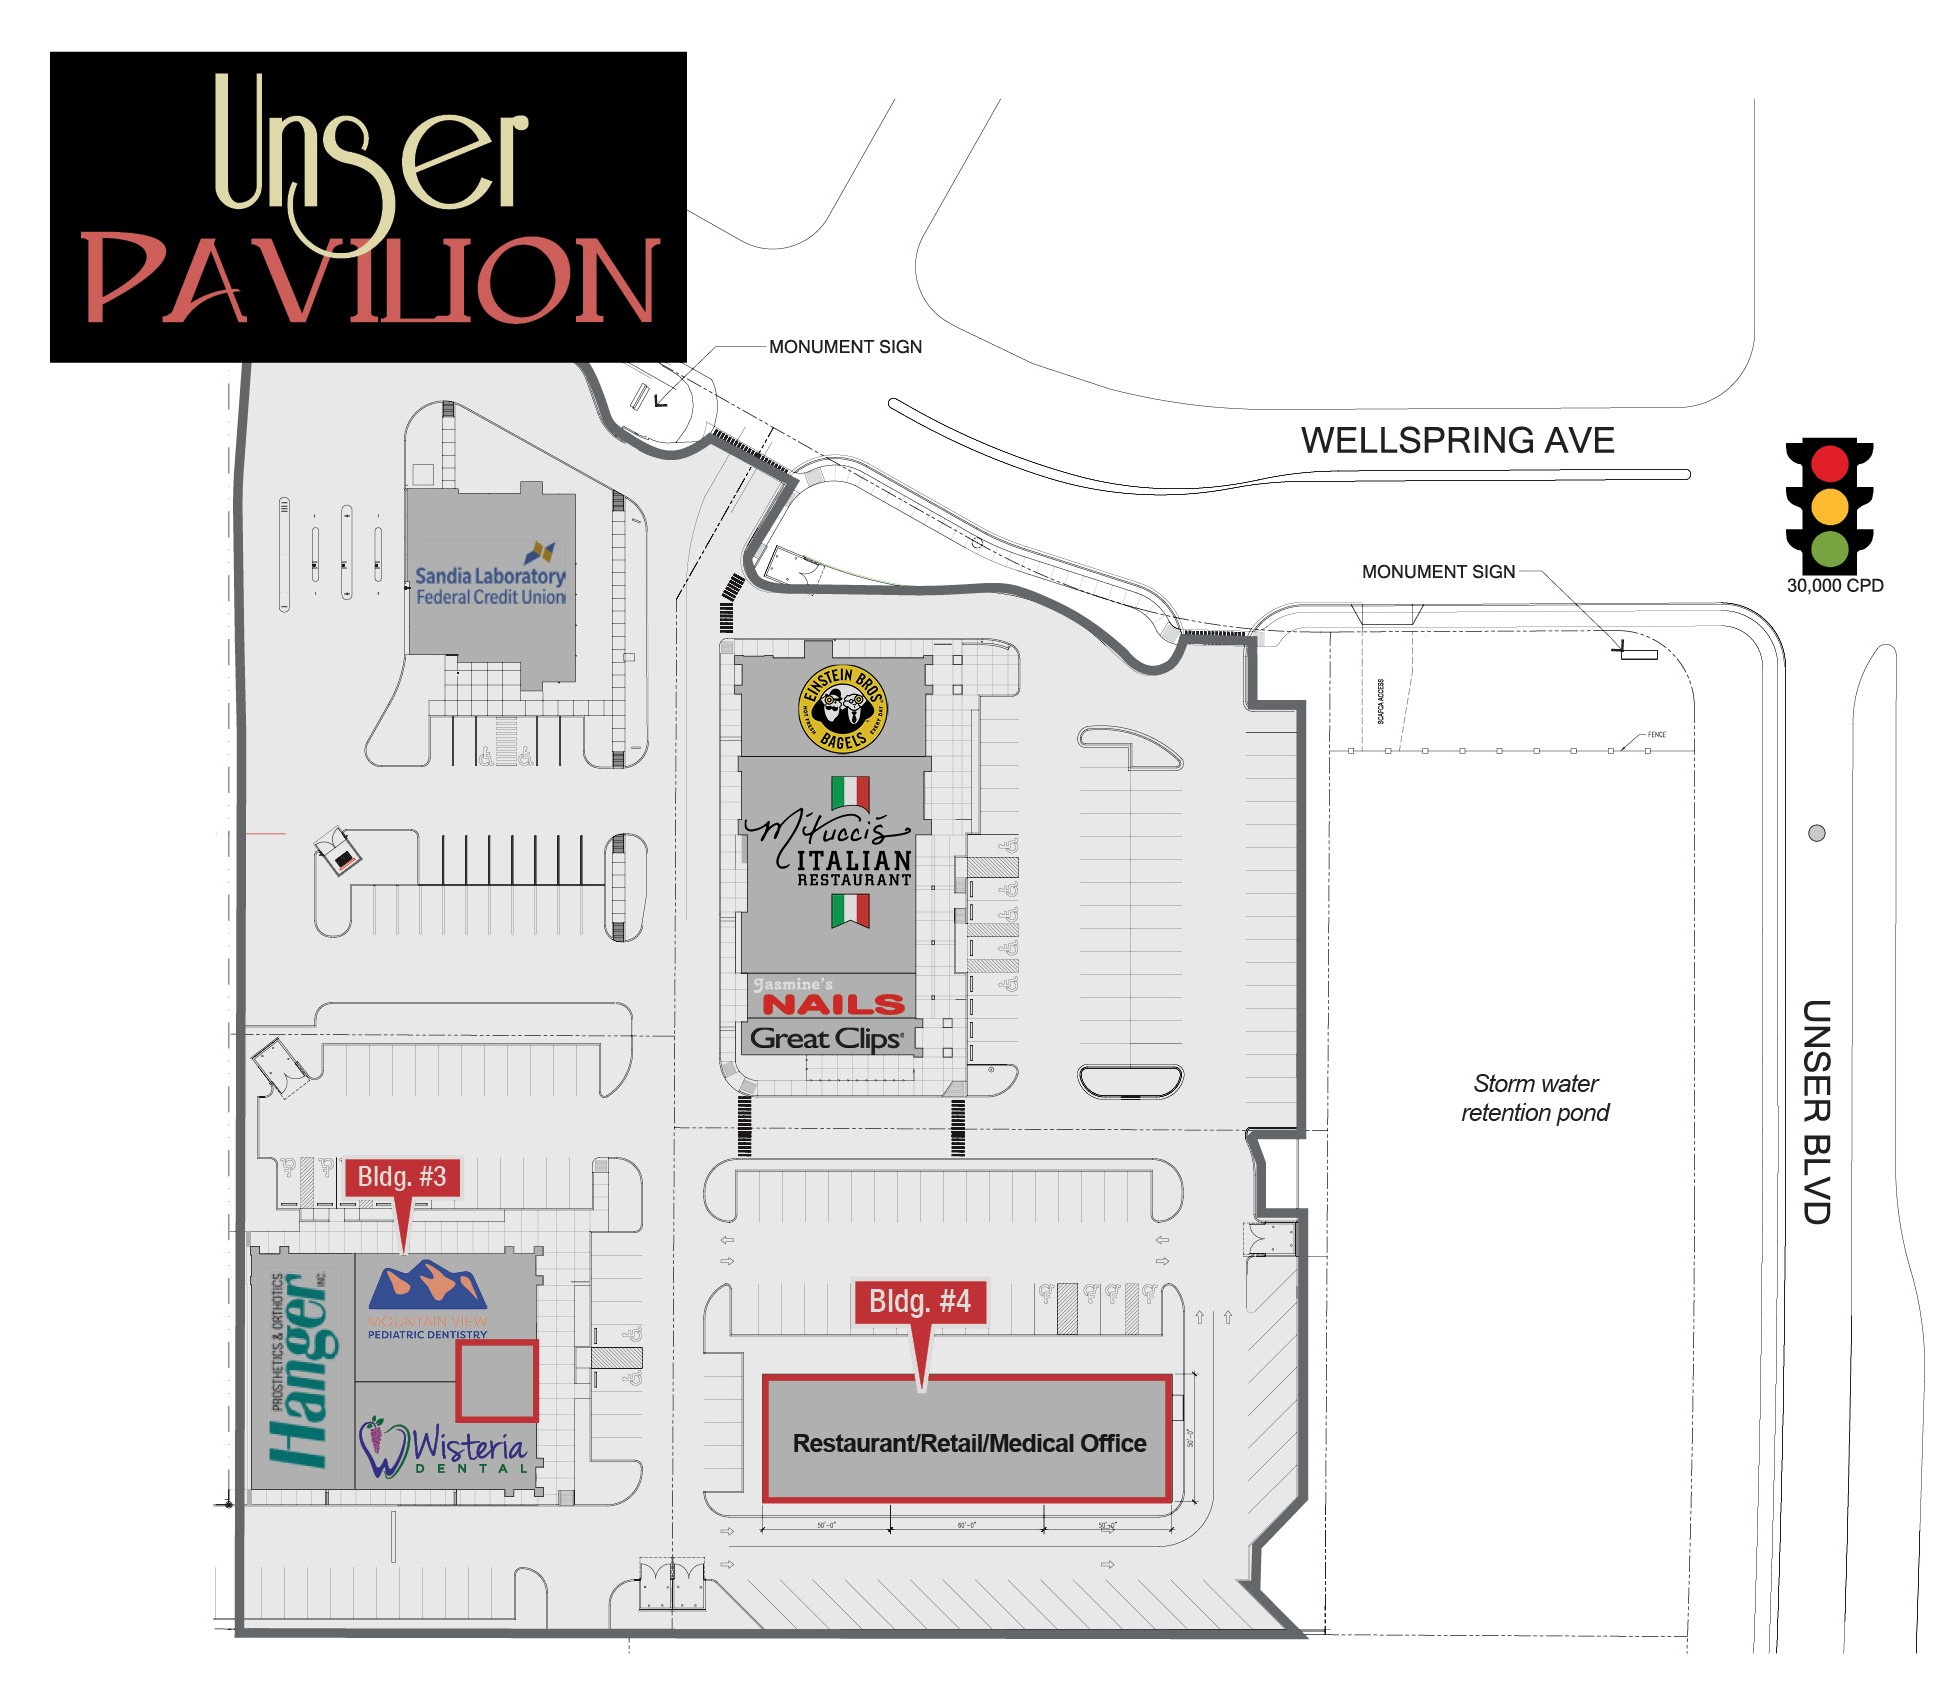 SWC-Unser-&-Wellspring_Unser-Pavilion_Retail-Shops_Site-Plan-Current[1]